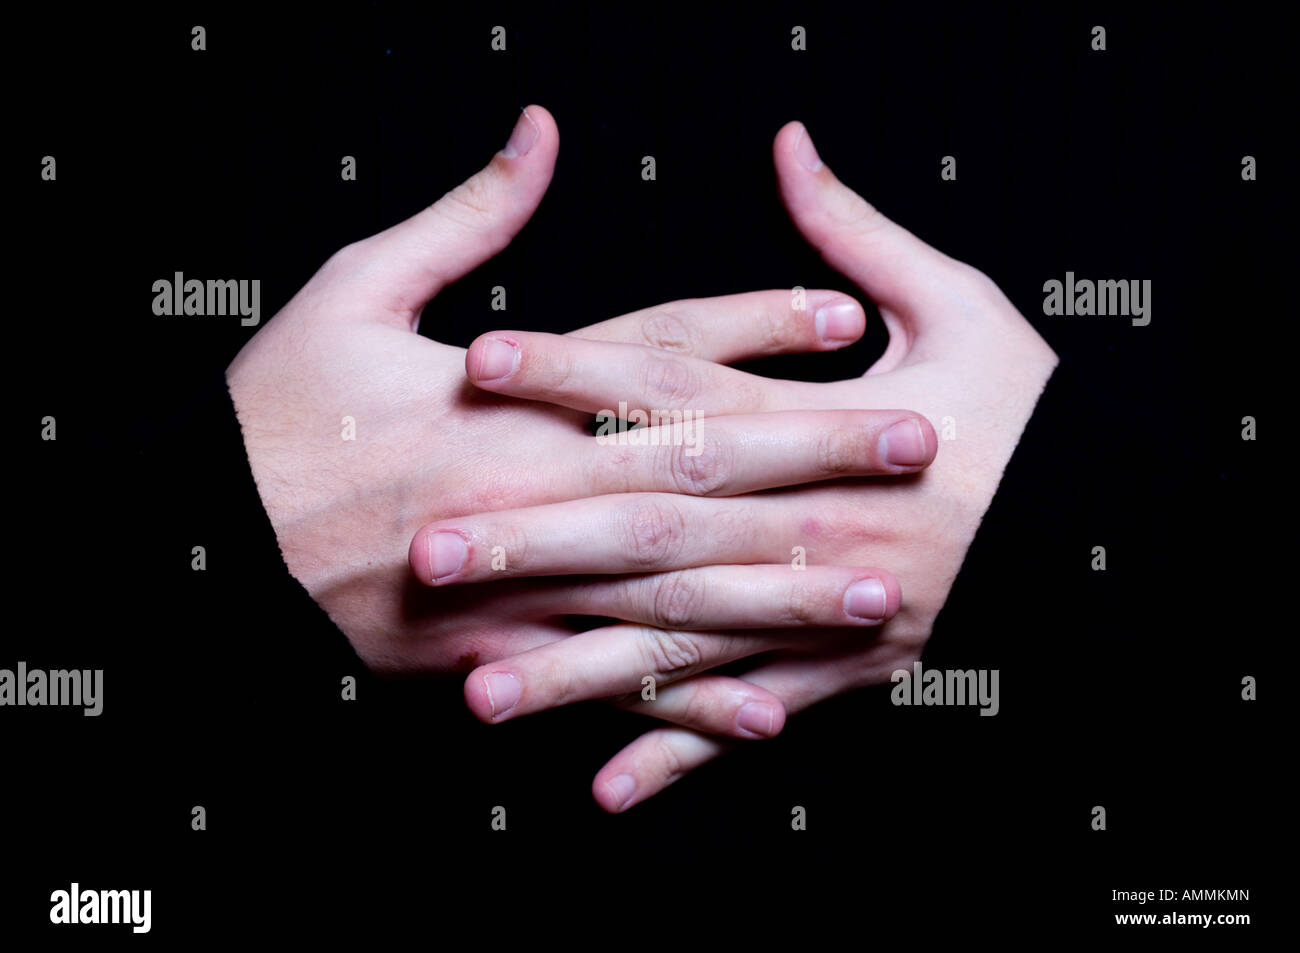 Linked hands - Stock Image